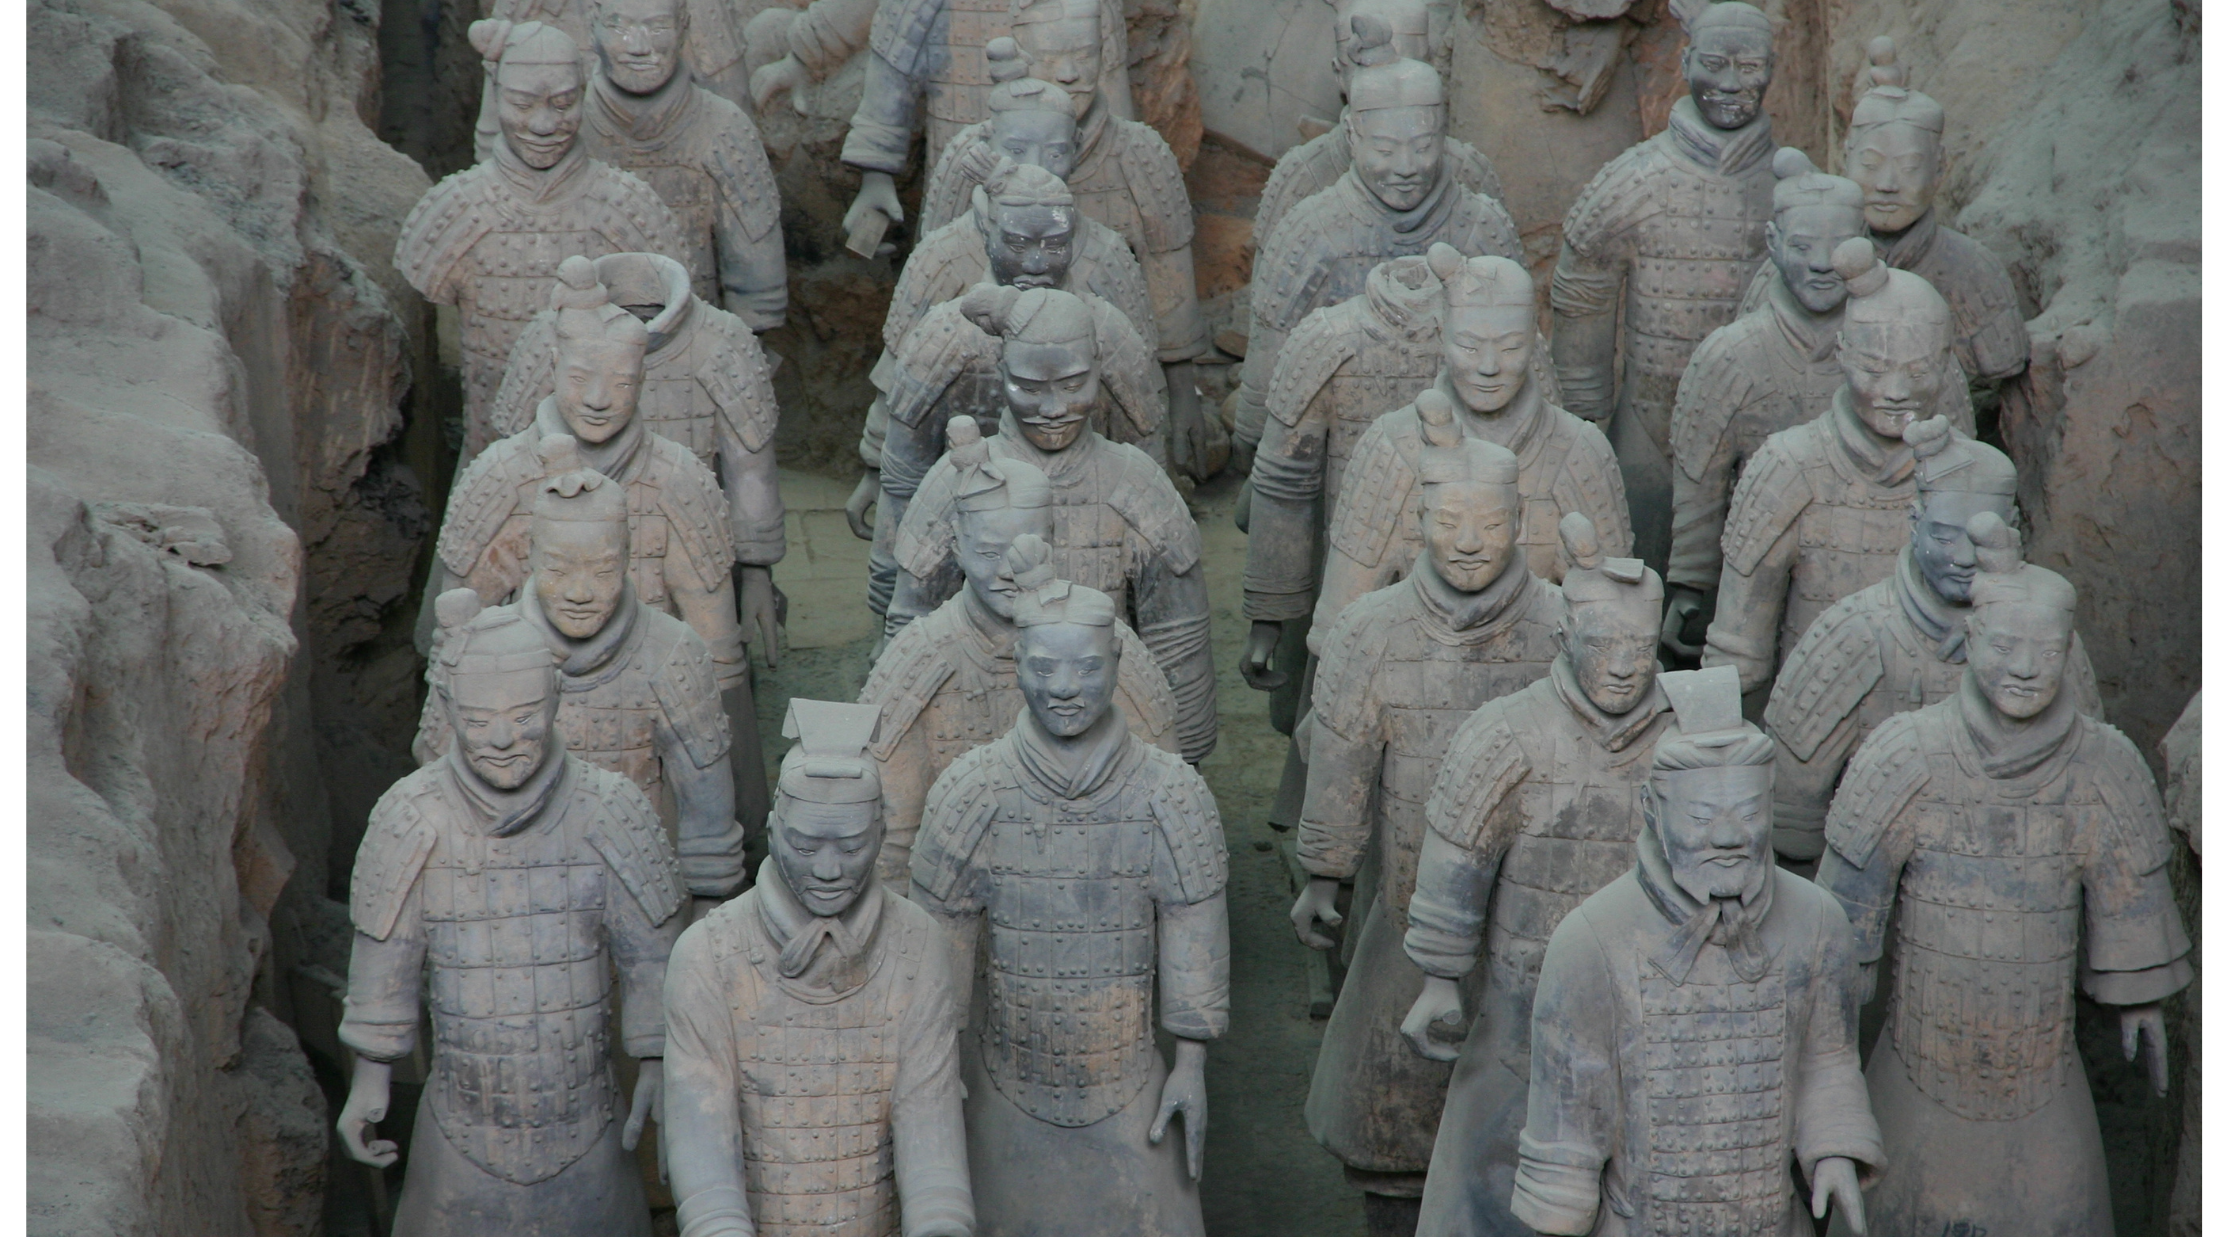 An Army of Terra Cotta Soldiers